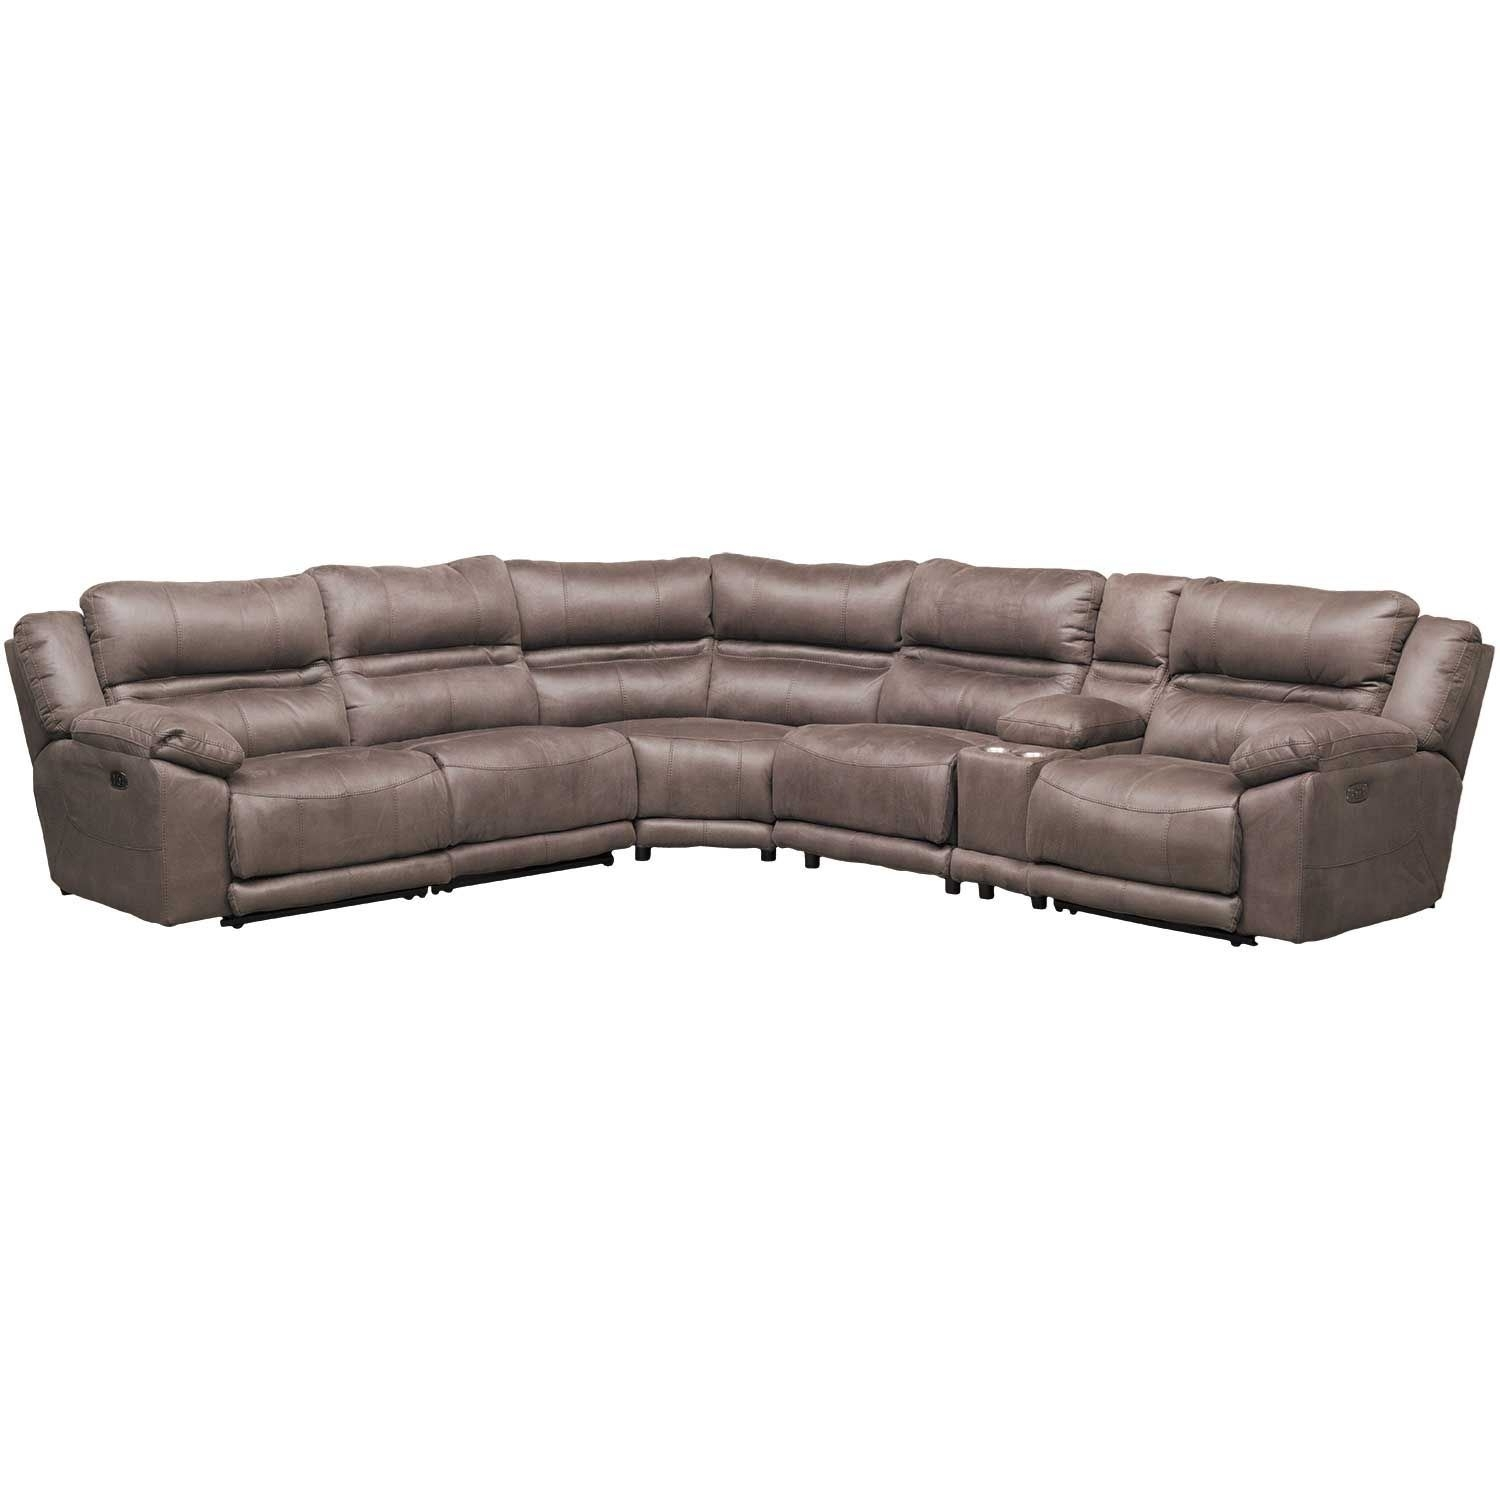 Braxton 6 Piece Power Reclining Sectional With Adjustable Headrest For Jackson 6 Piece Power Reclining Sectionals With  Sleeper (Image 7 of 25)